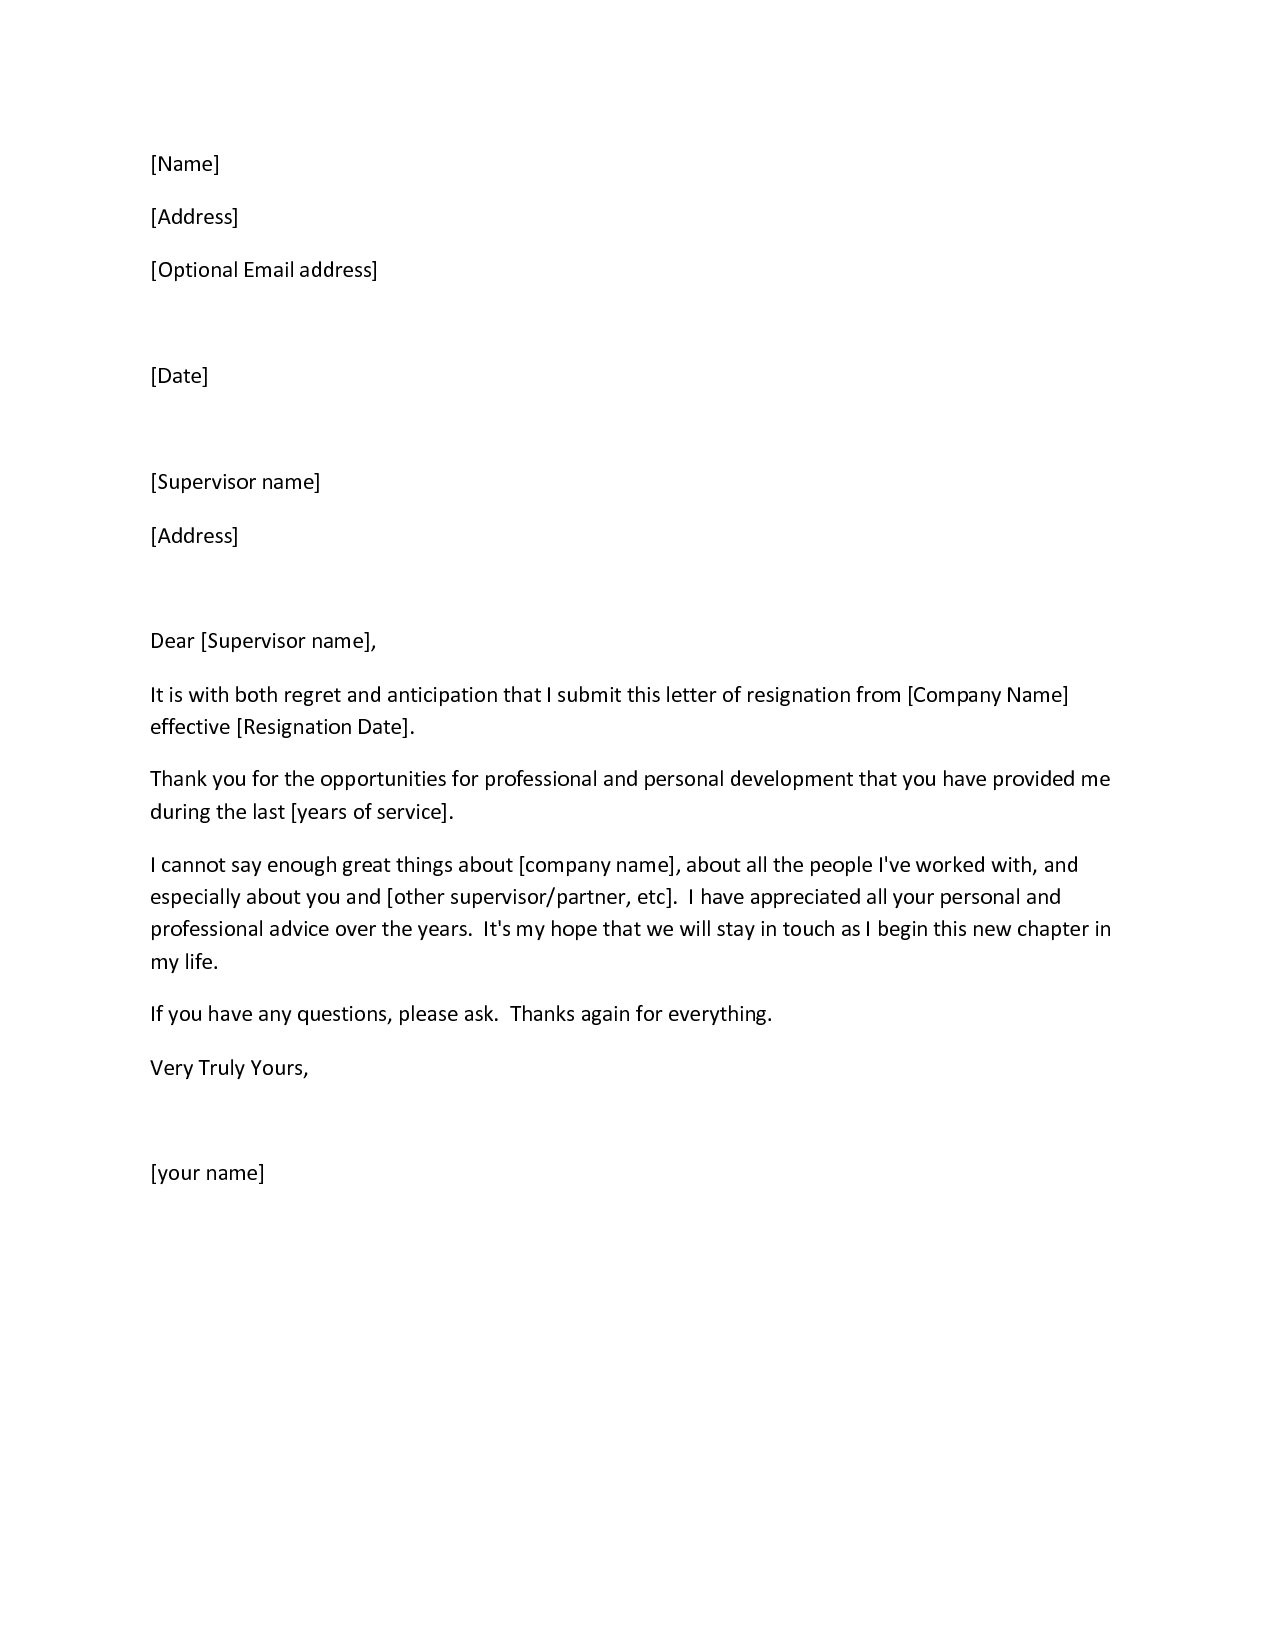 Resignations Letter Example Best Ideas About Resignation Sample